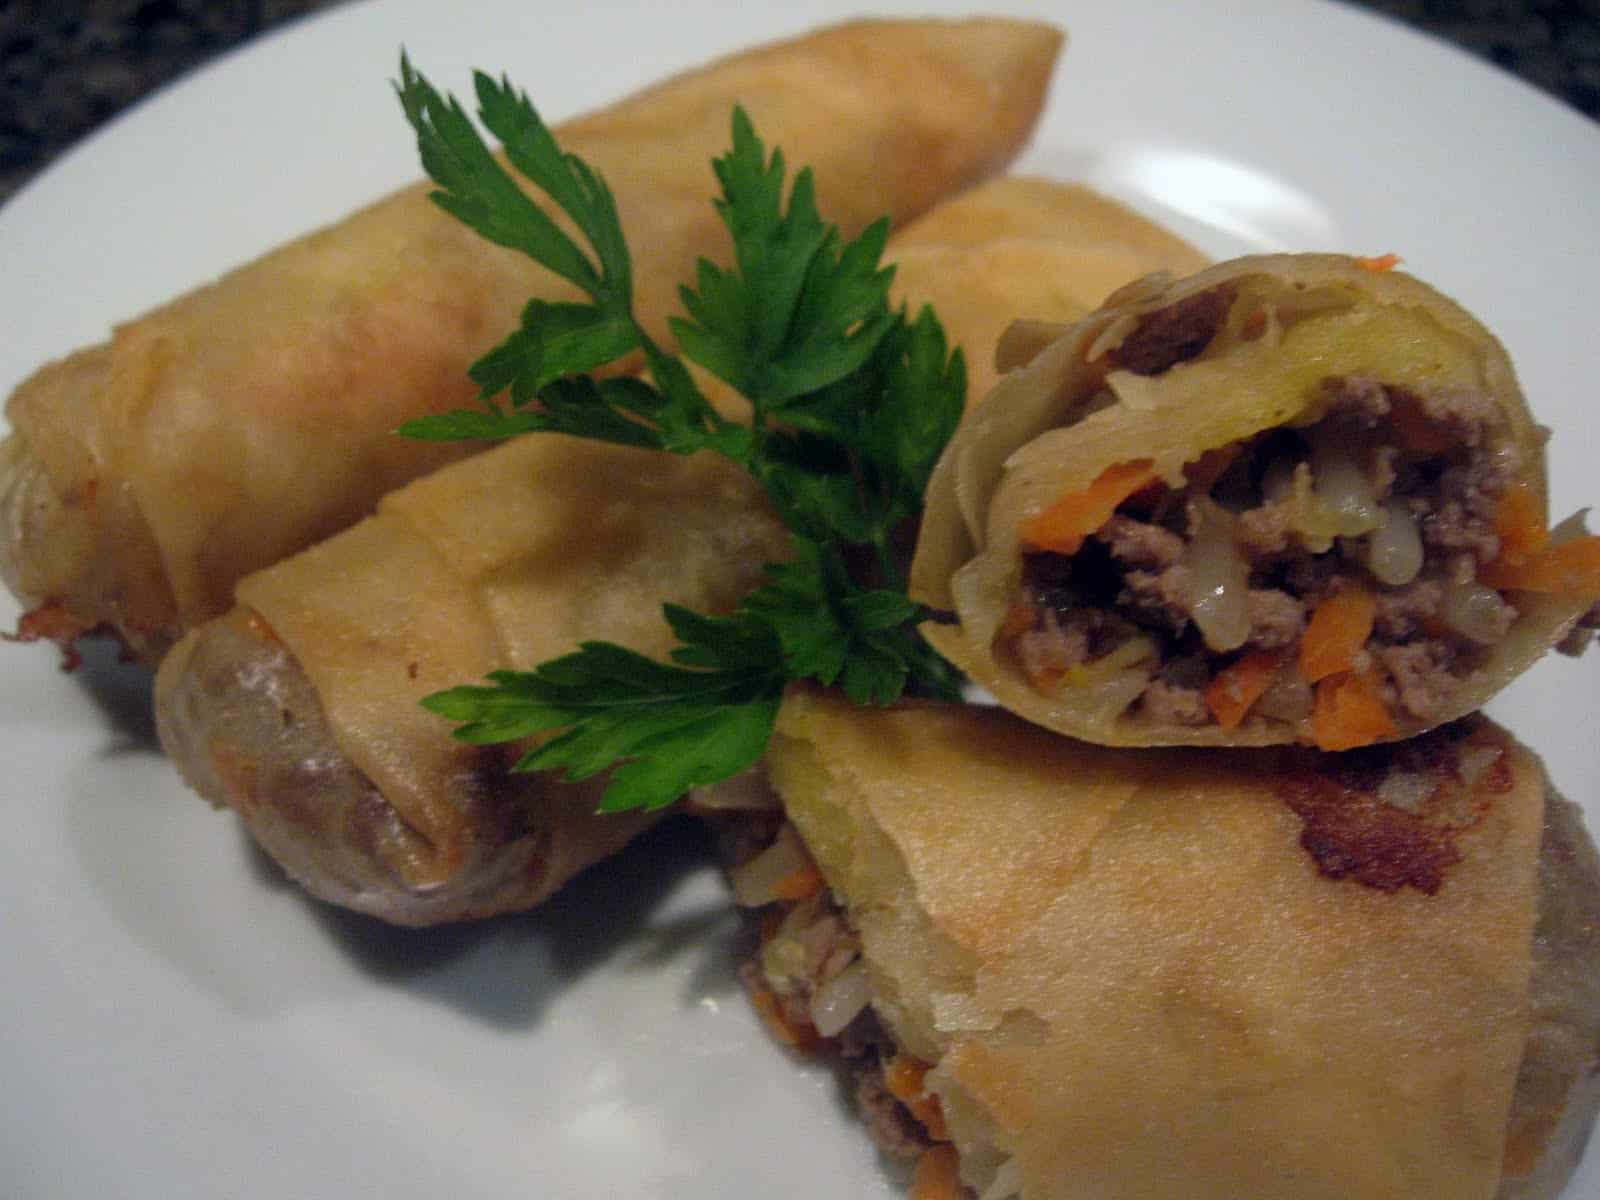 Ground beef and bean sprout spring rolls